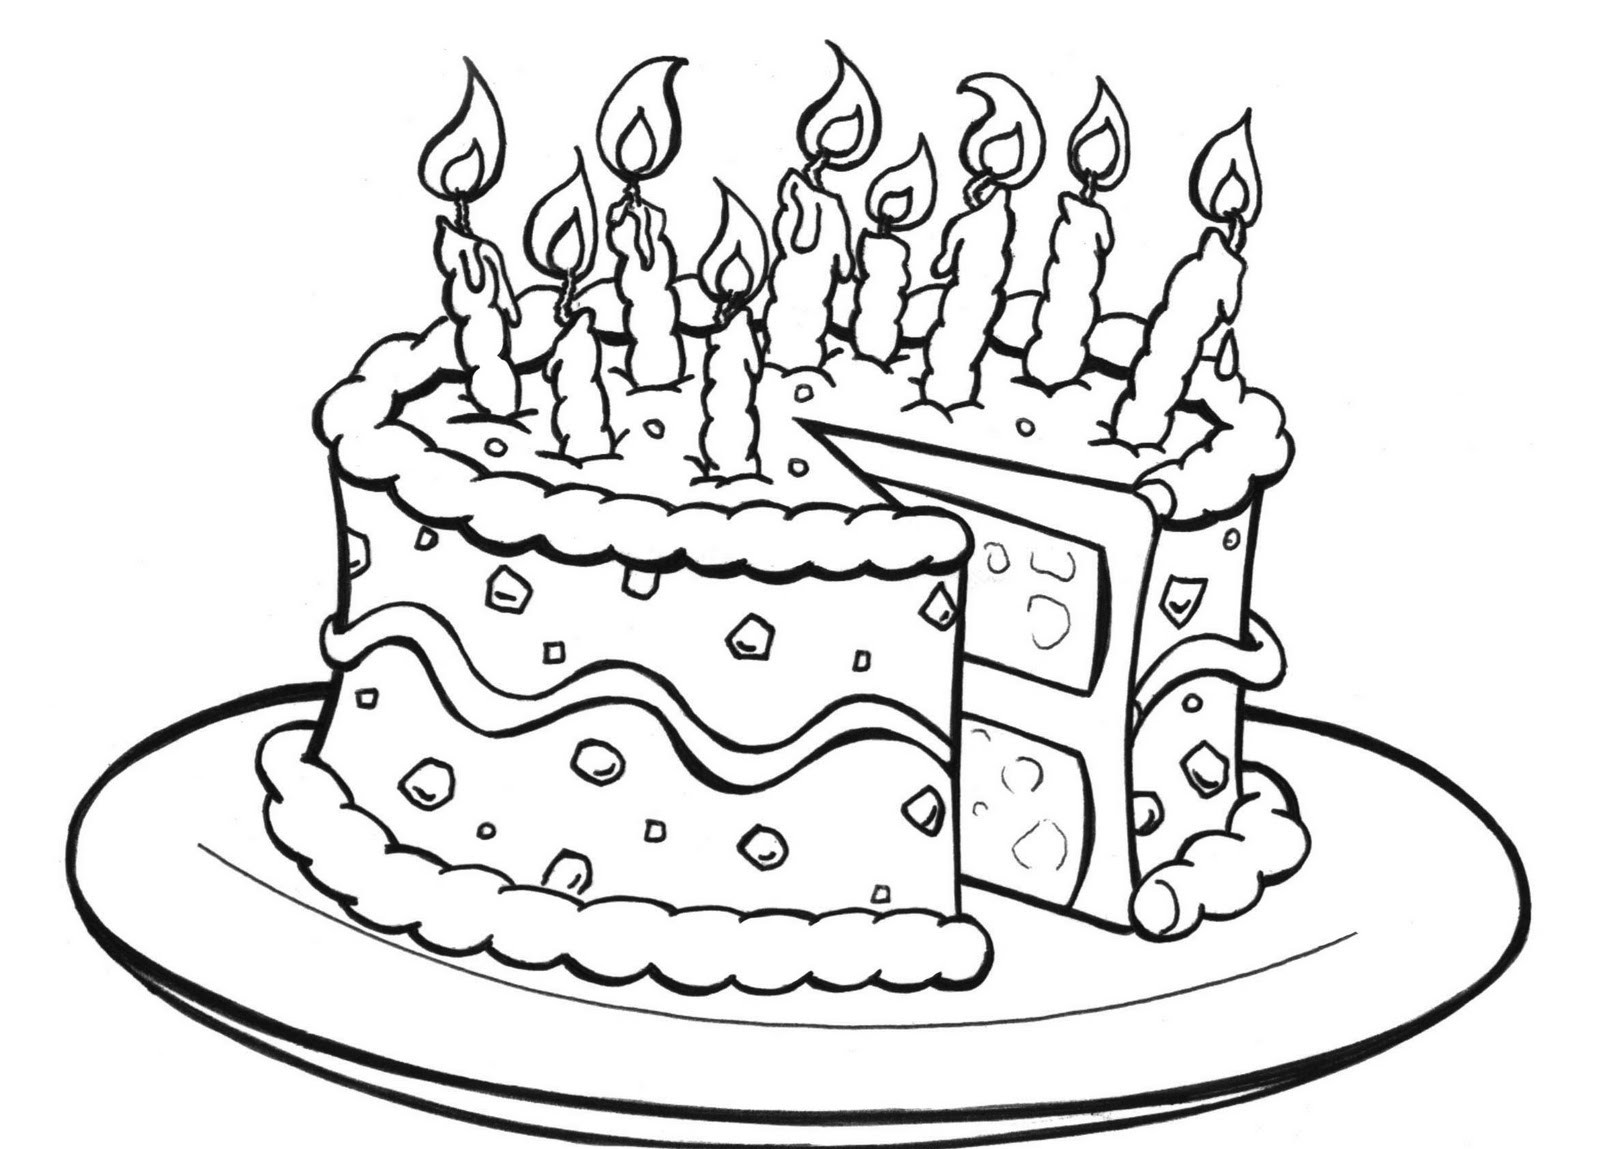 Pleasing Free Printable Birthday Cake Coloring Pages For Kids Personalised Birthday Cards Cominlily Jamesorg